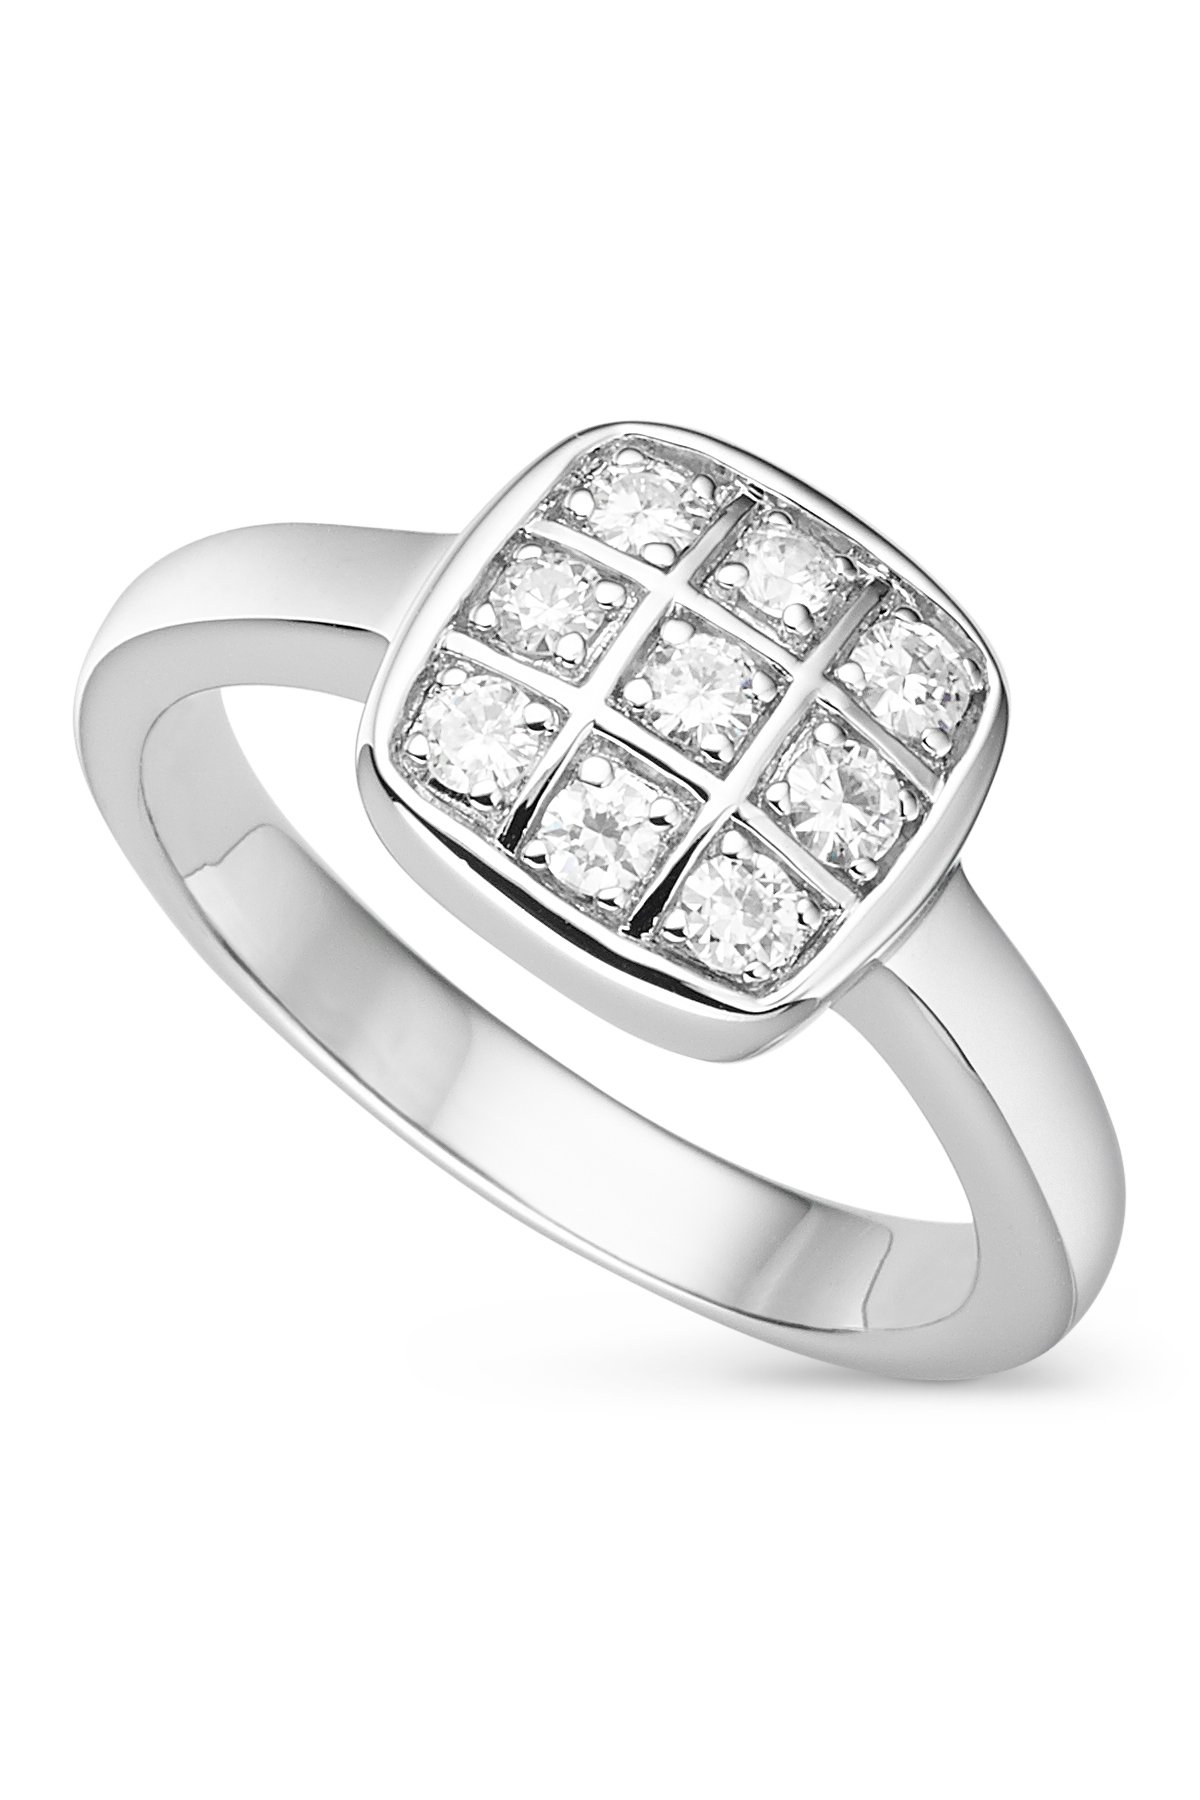 Checkerboard Anderson Forever Classic Moissanite Ring - Size 7 By Charles & Colvard